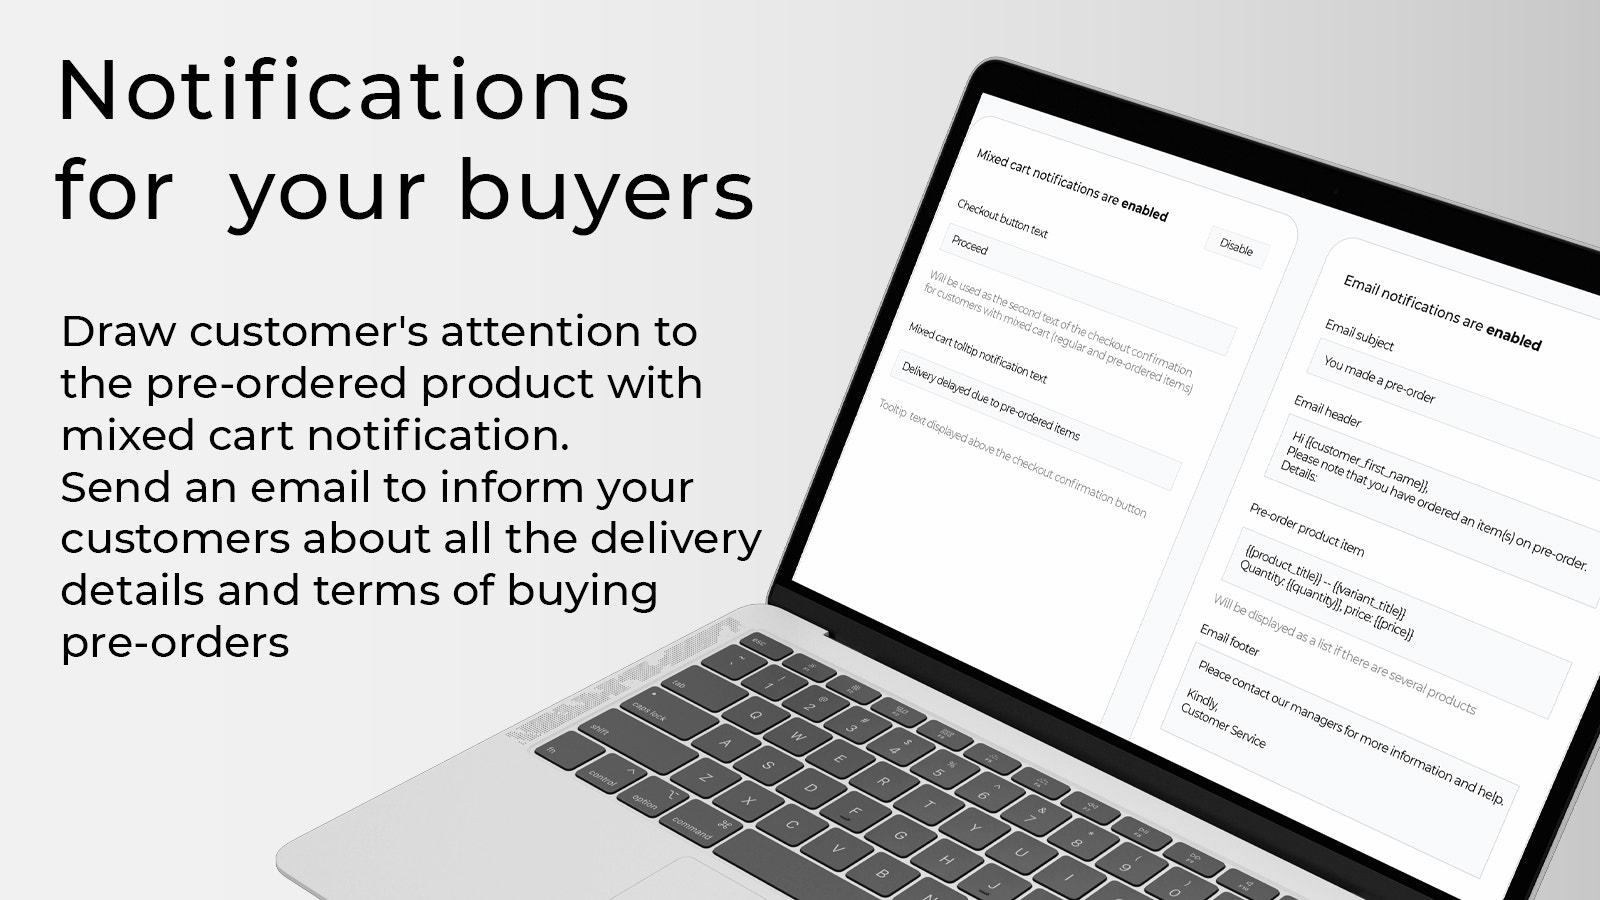 Notifications for your buyers